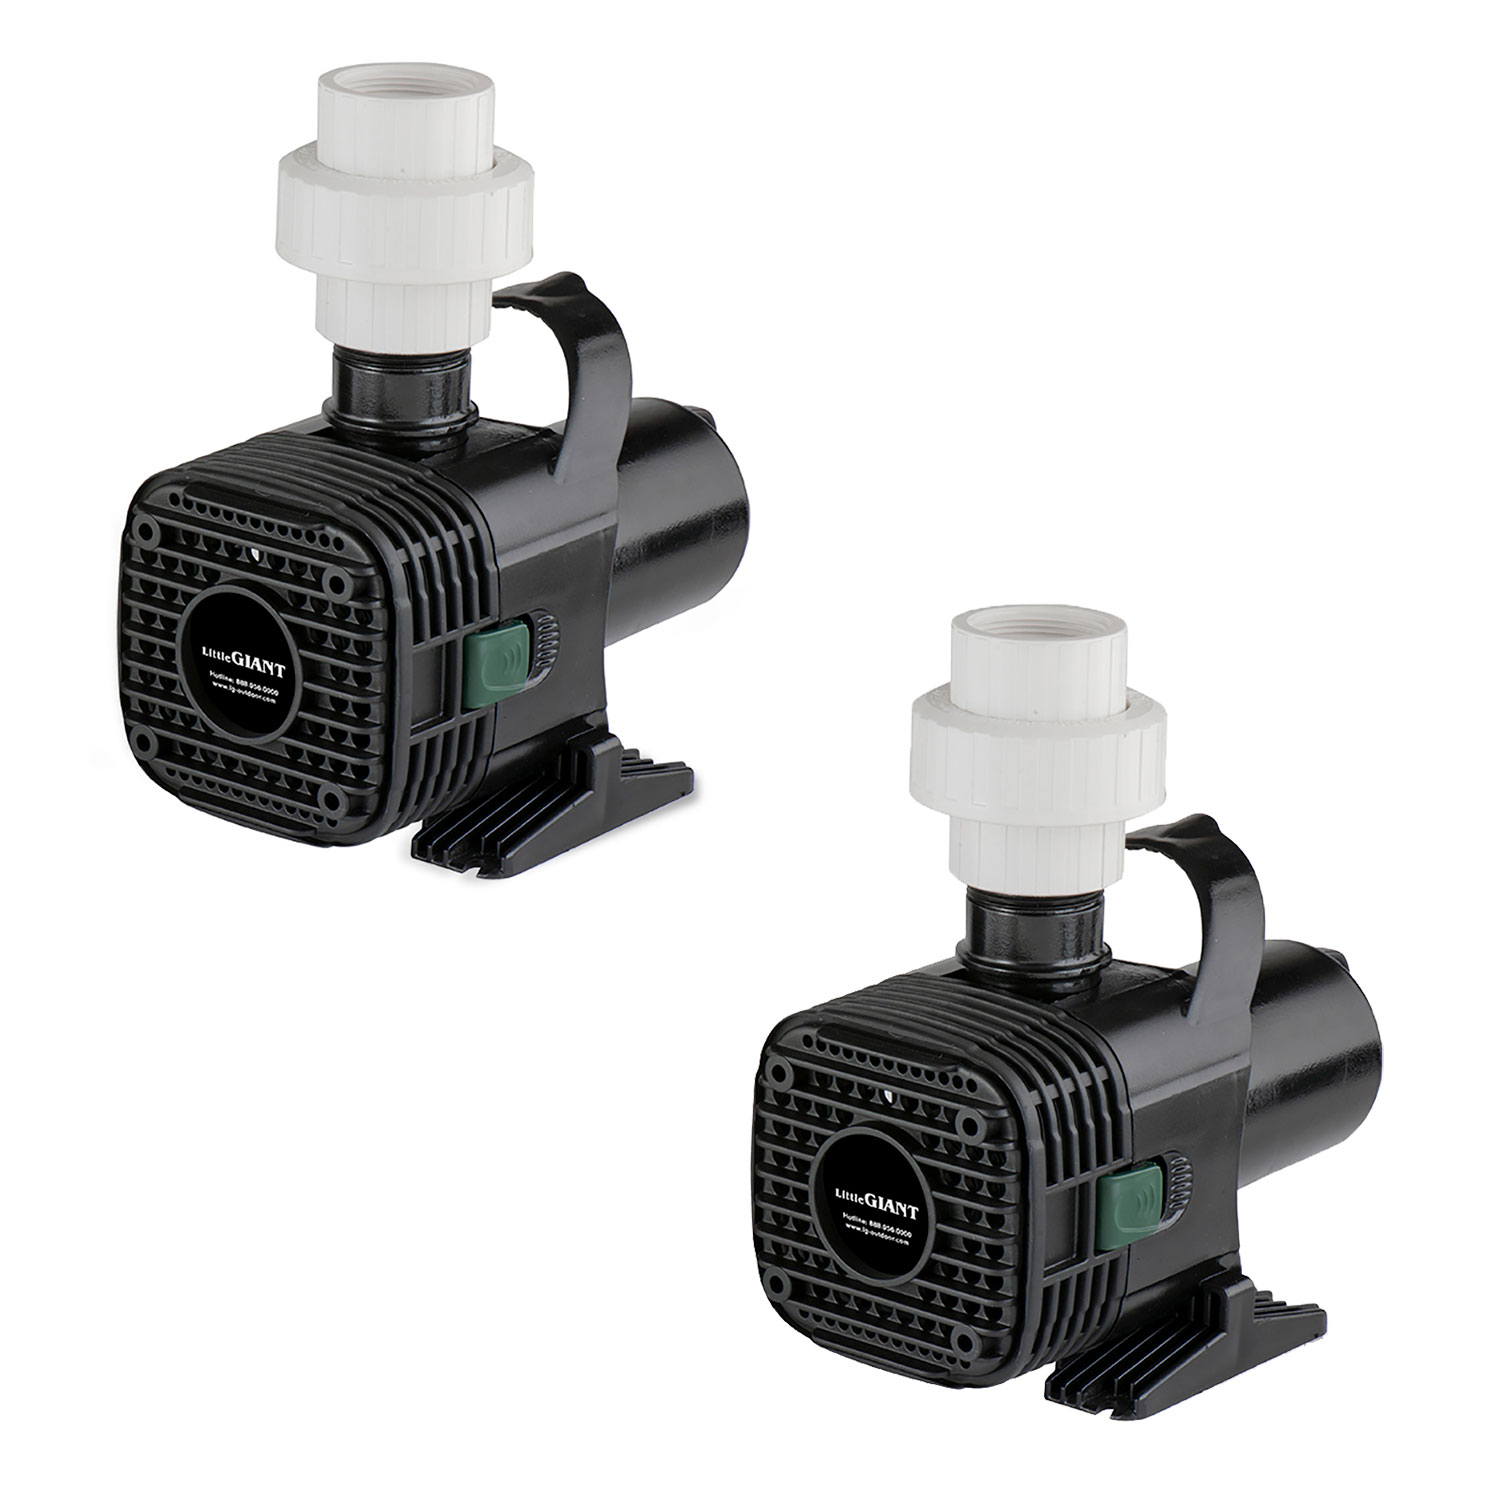 Little Giant F30-4000 4000 GPH 1.8 Amp Wet Rotor Pond Pump w/20 Ft Cord (2 Pack)